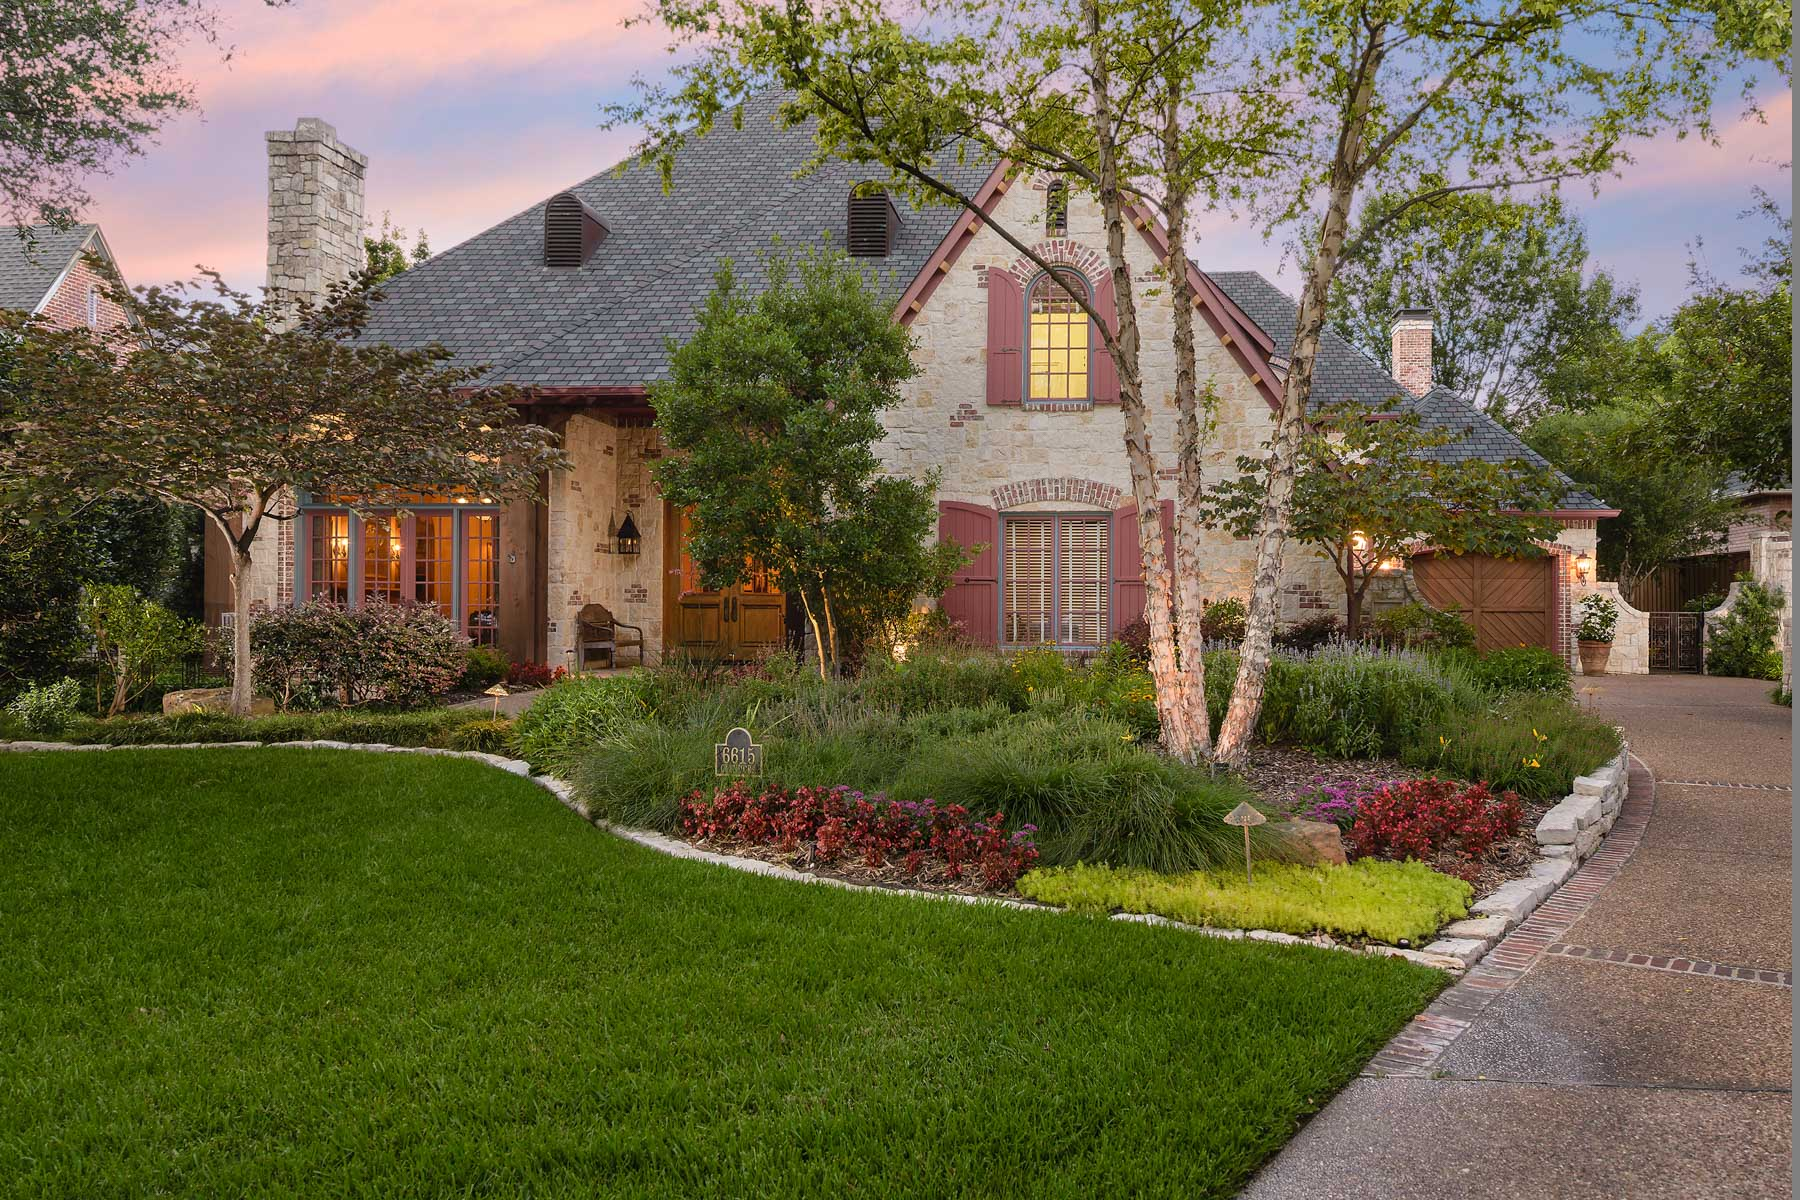 단독 가정 주택 용 매매 에 Absolutely Magnificent Oscar Ponder French Country Home 6615 Glendora Avenue Dallas, 텍사스, 75230 미국